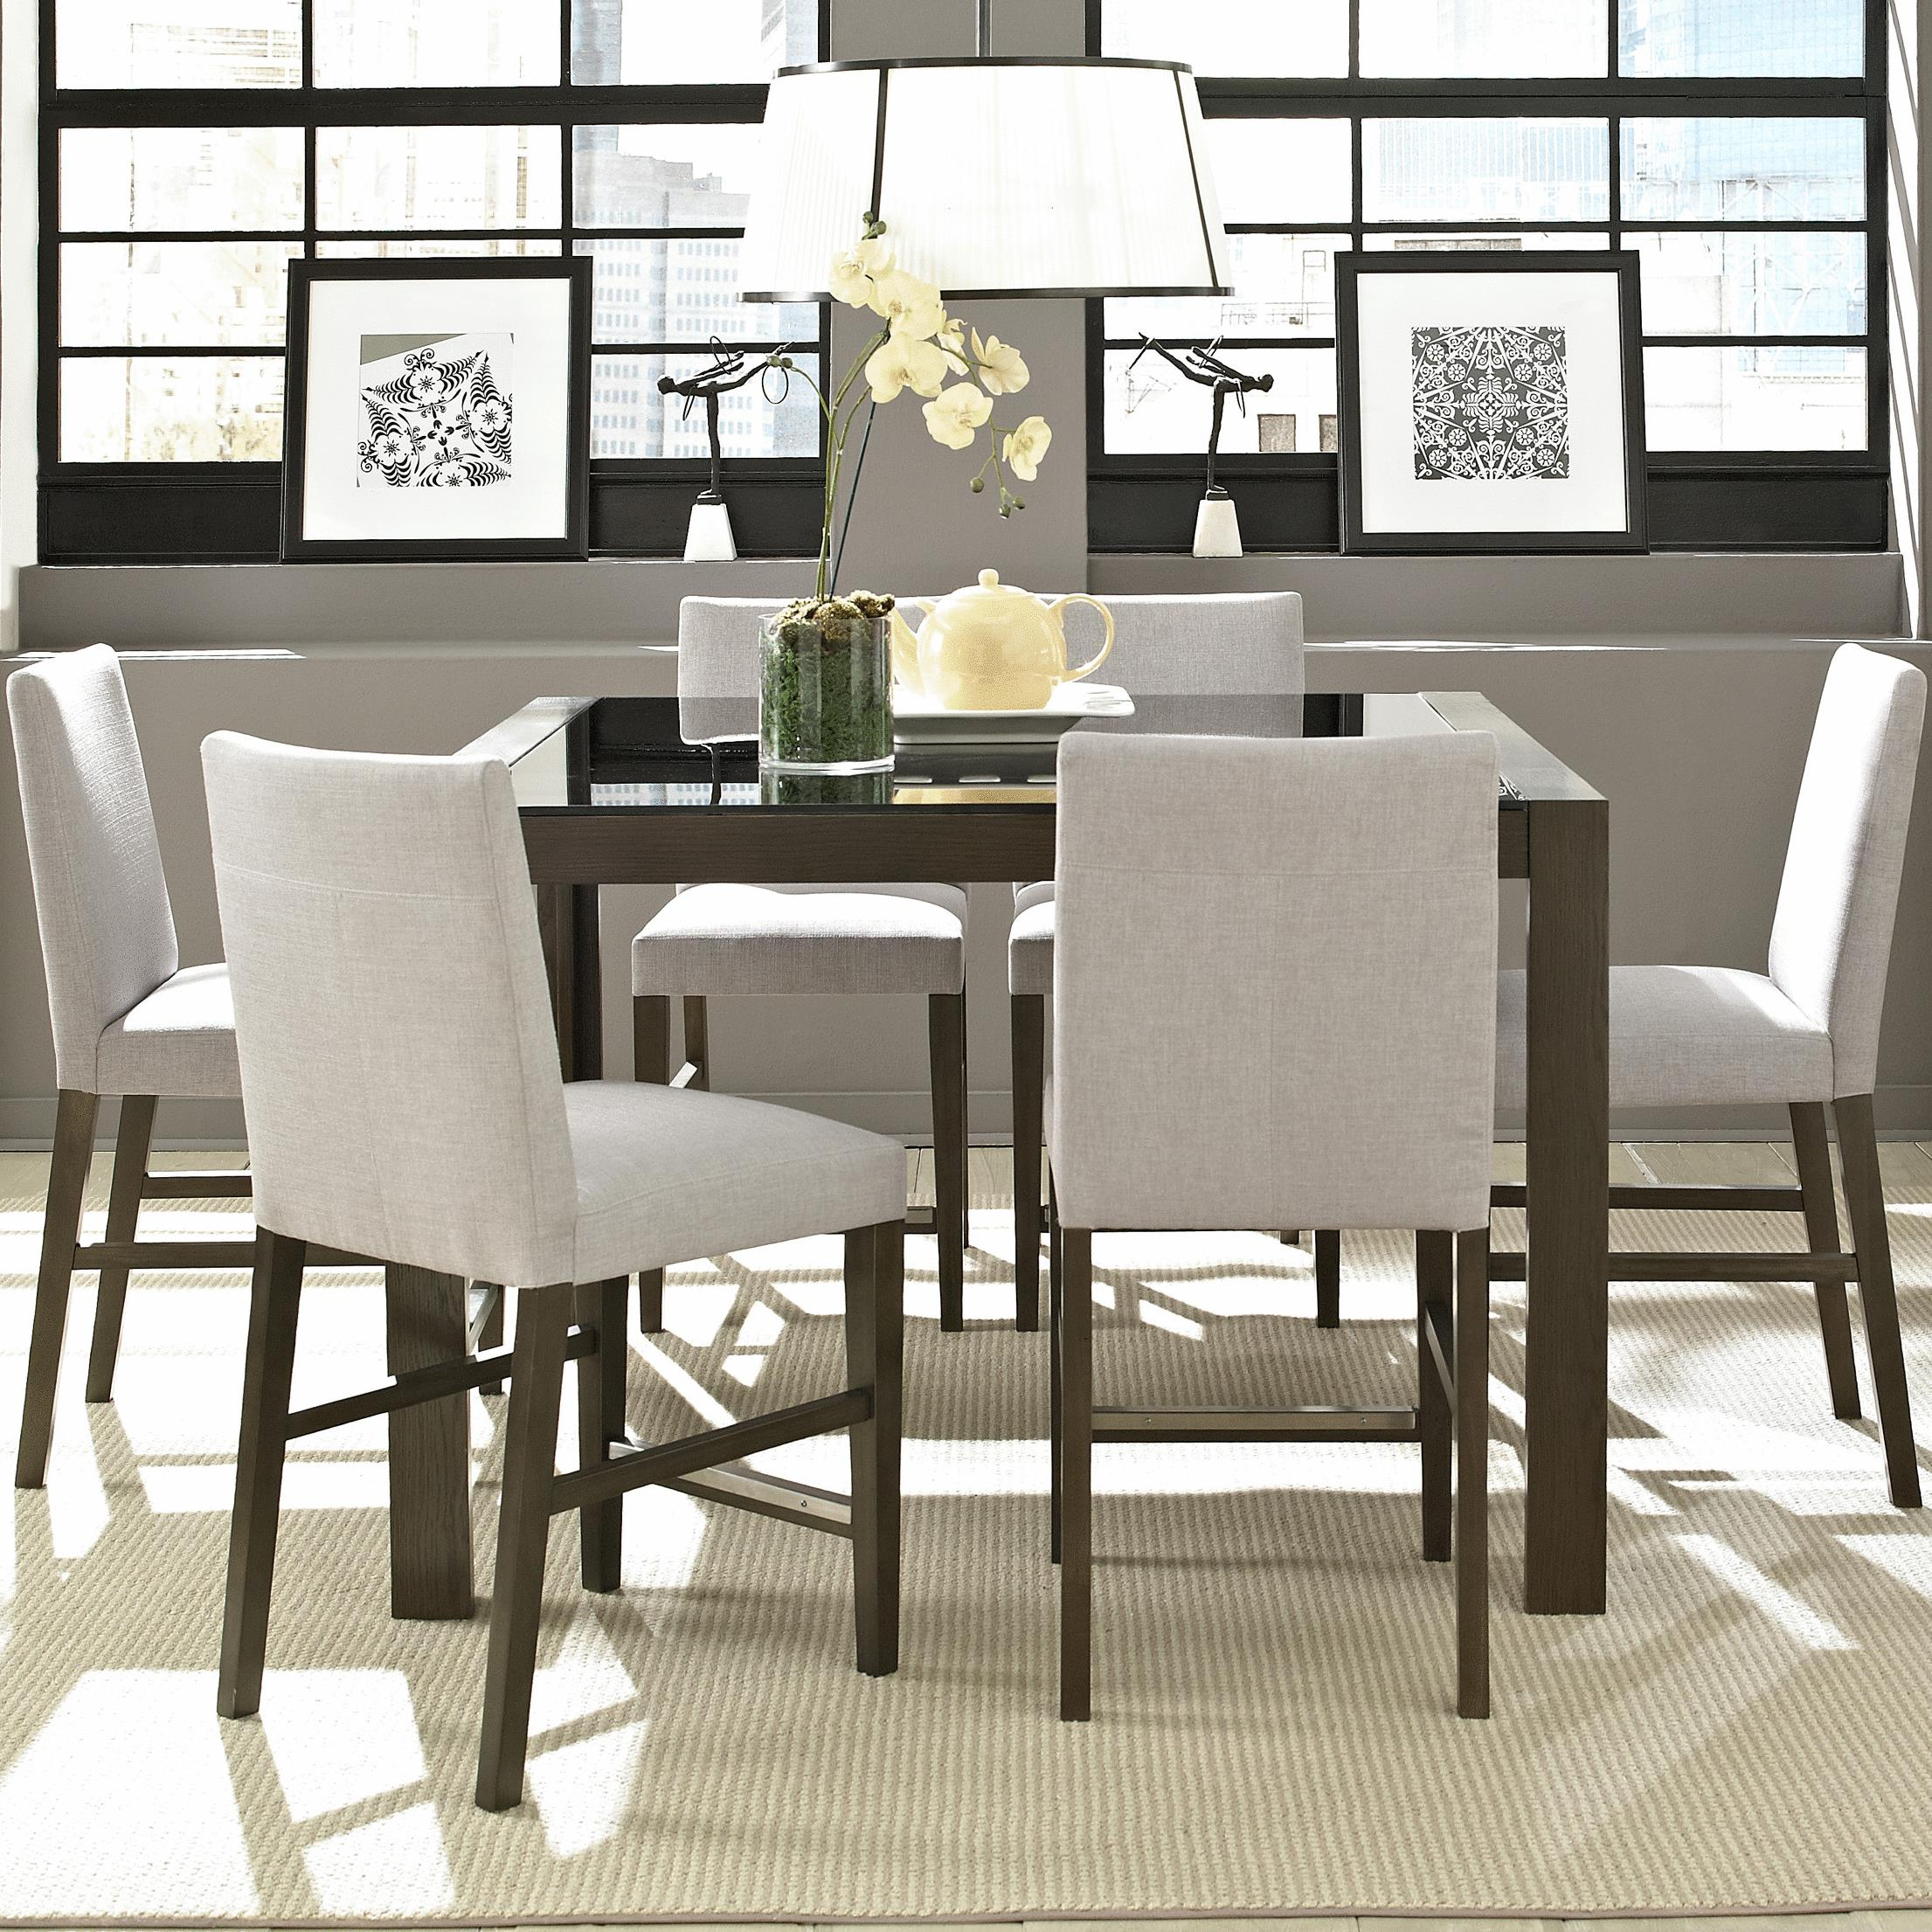 Belfort Select Modera Cafe Table and Chair Set - Item Number: 525-161+160+6x525-140